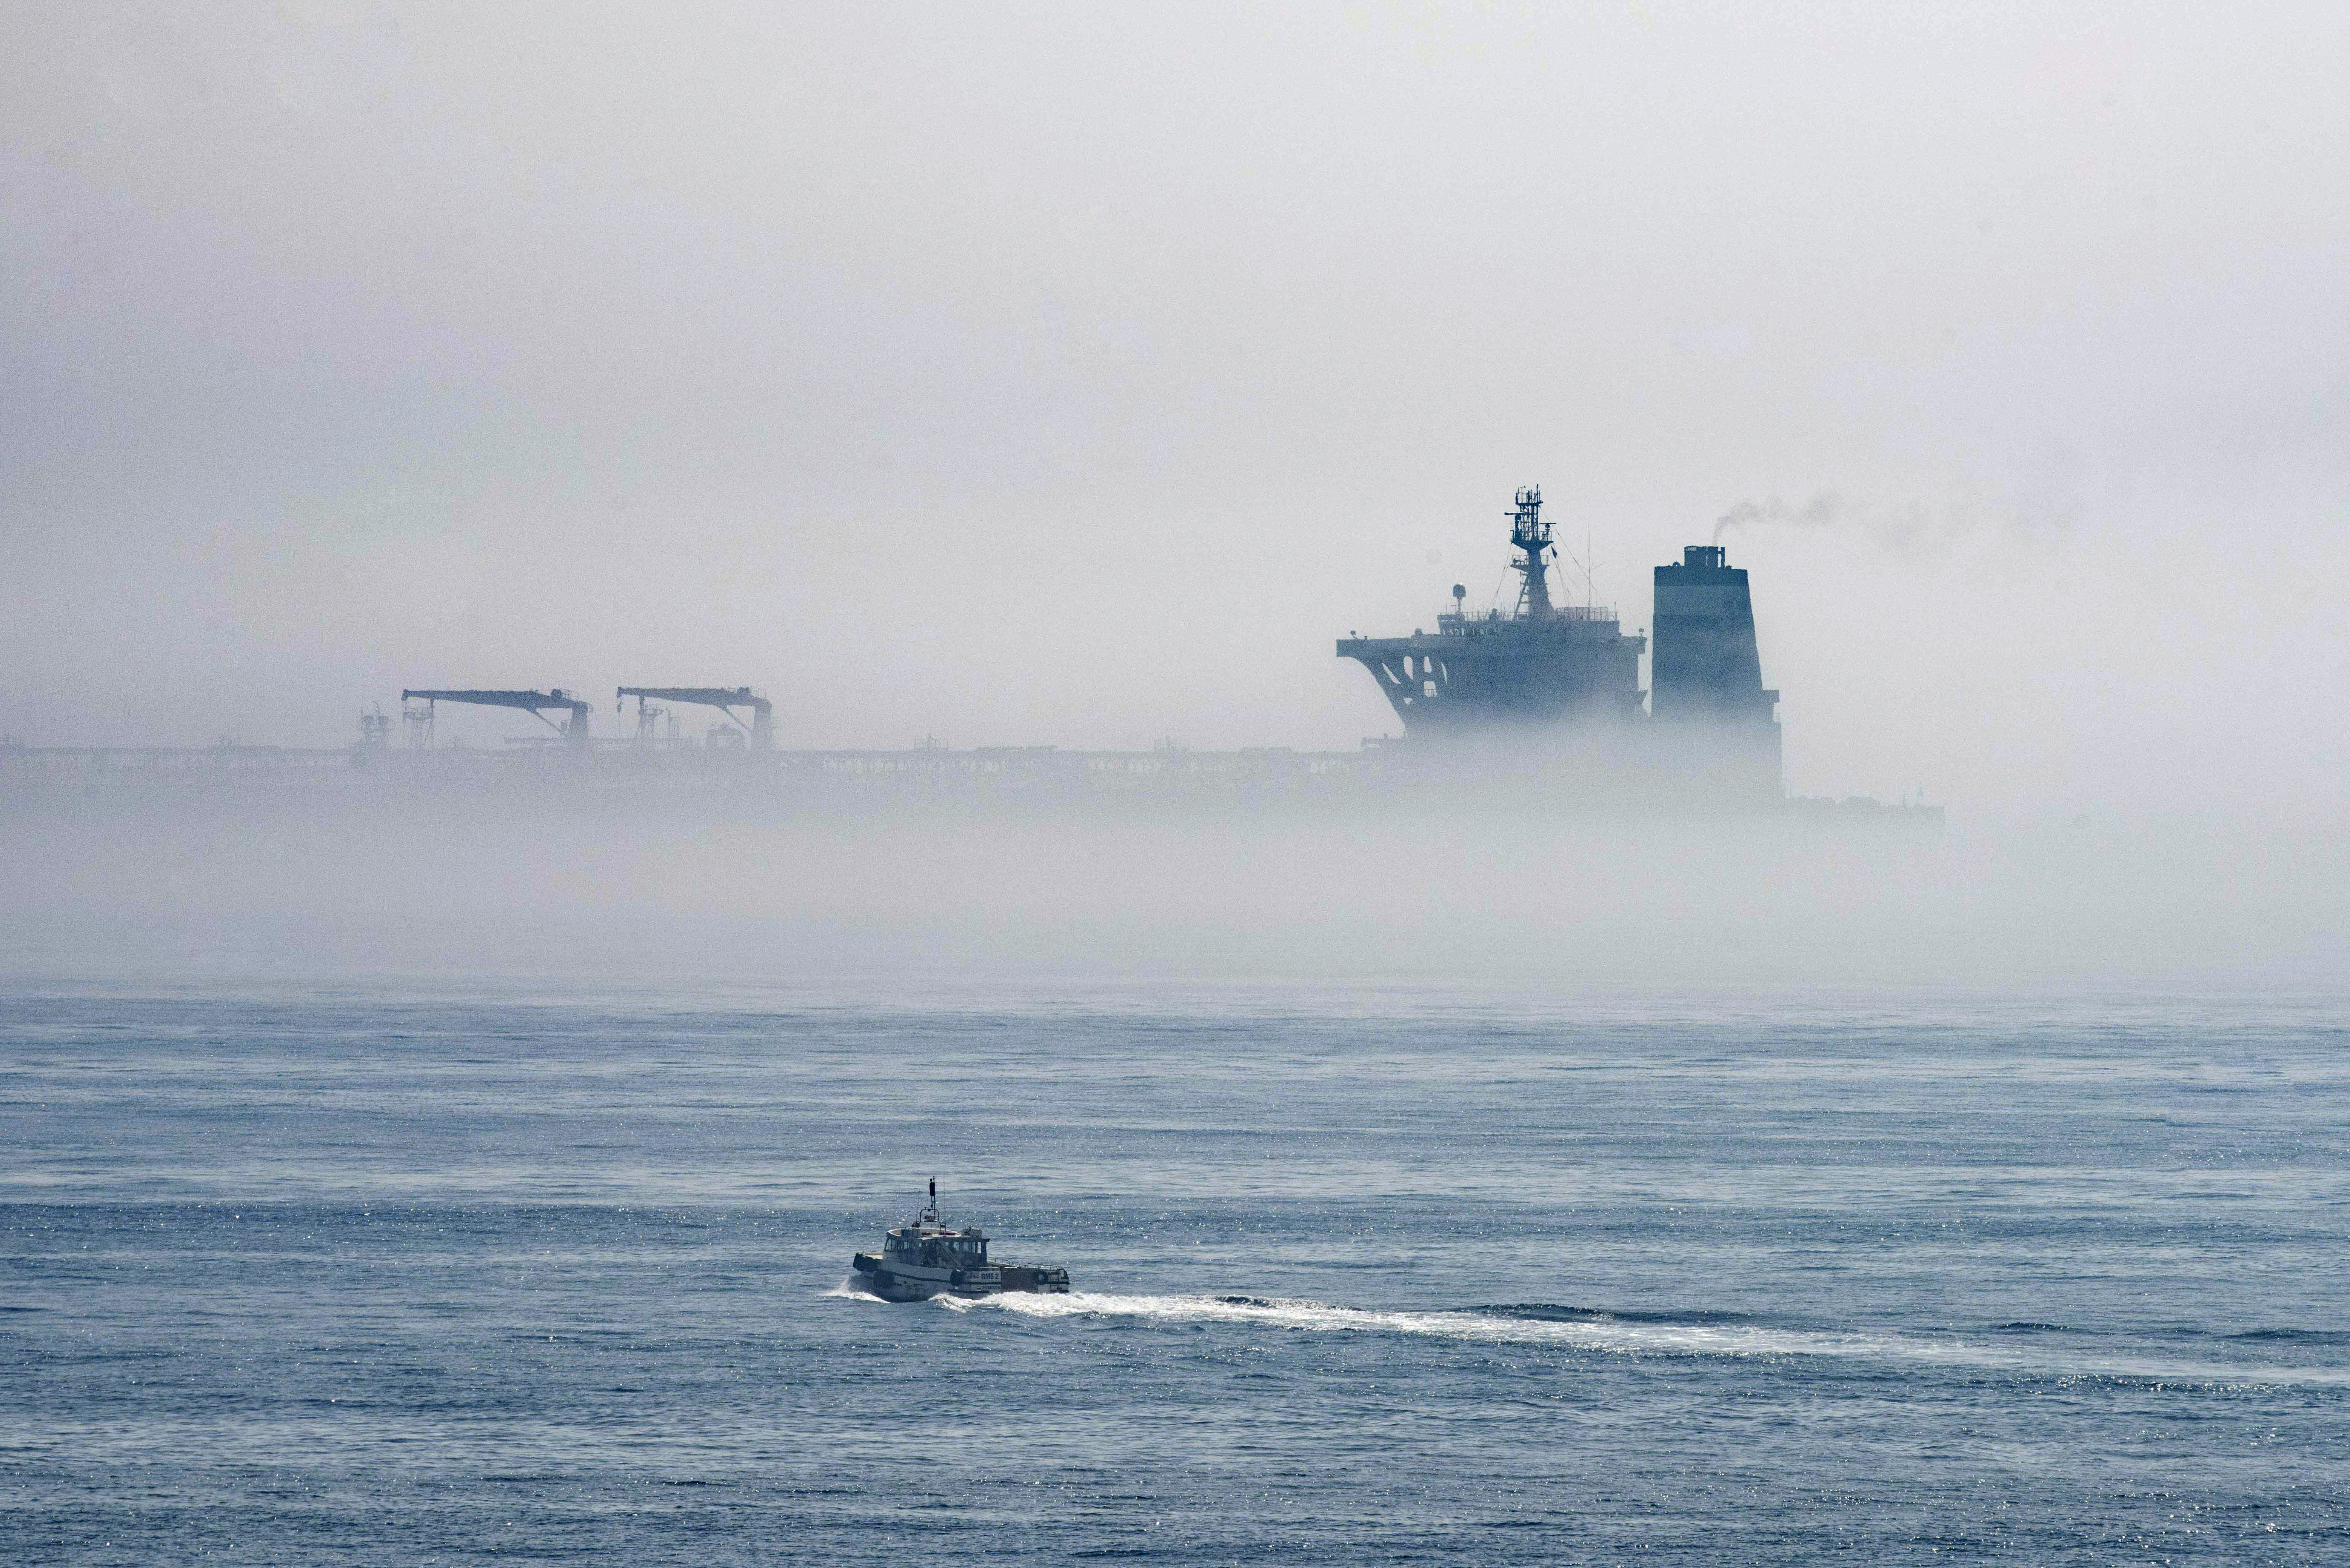 Iranian oil tanker pursued by US says it is going to Turkey